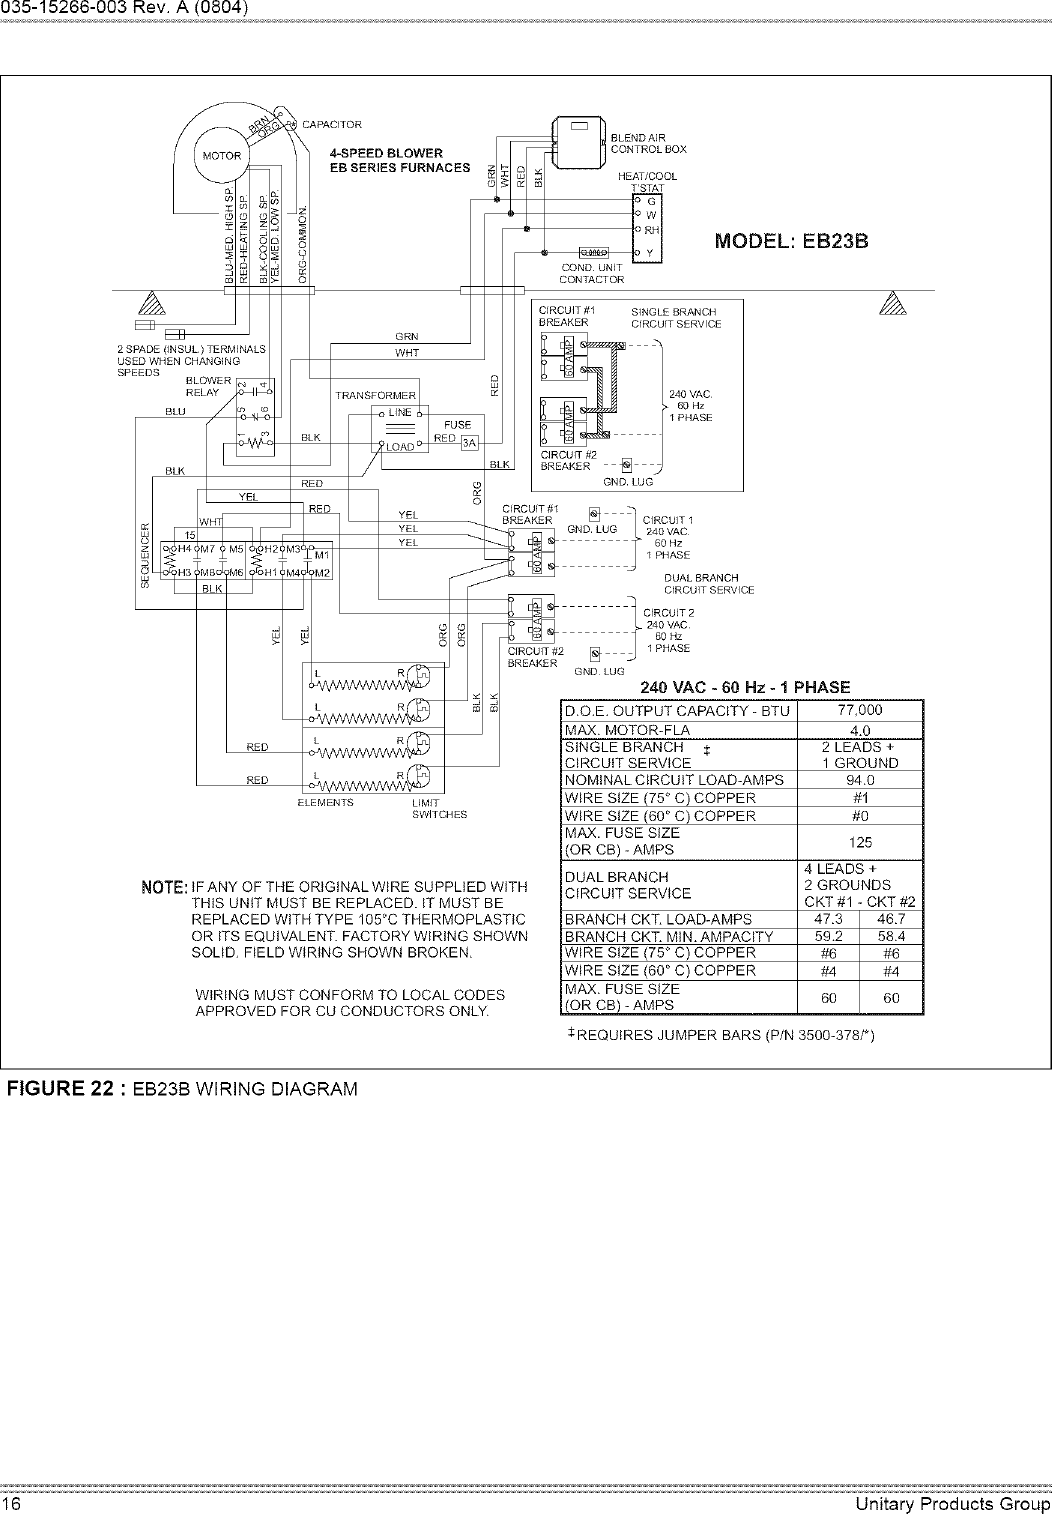 hight resolution of need a wiring digram for a evcon coleman furance model eb23b wiring diagram electric furnaces coleman furnace